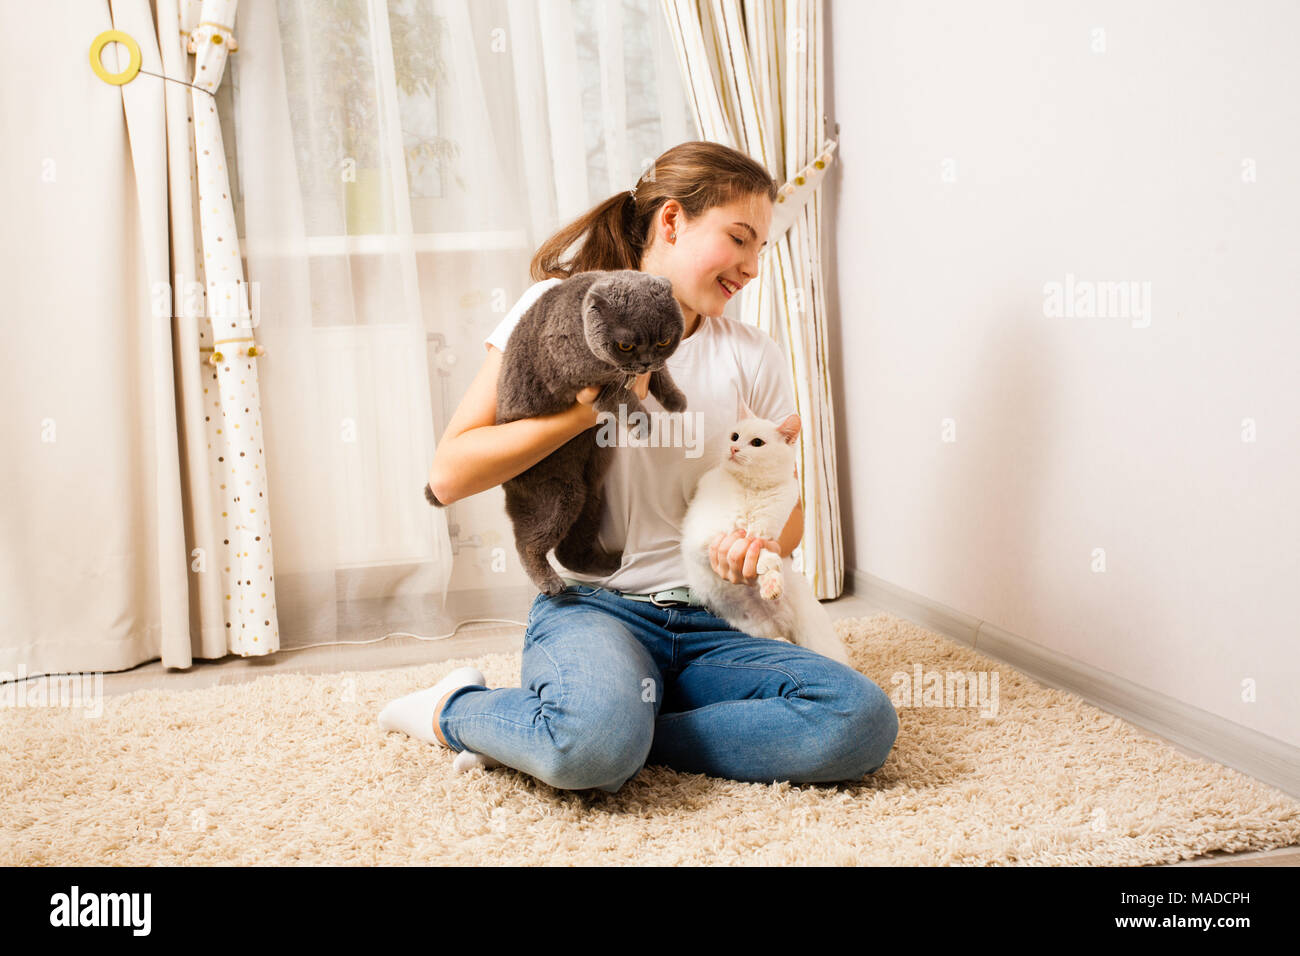 young girl is having fun with her cats - Stock Image